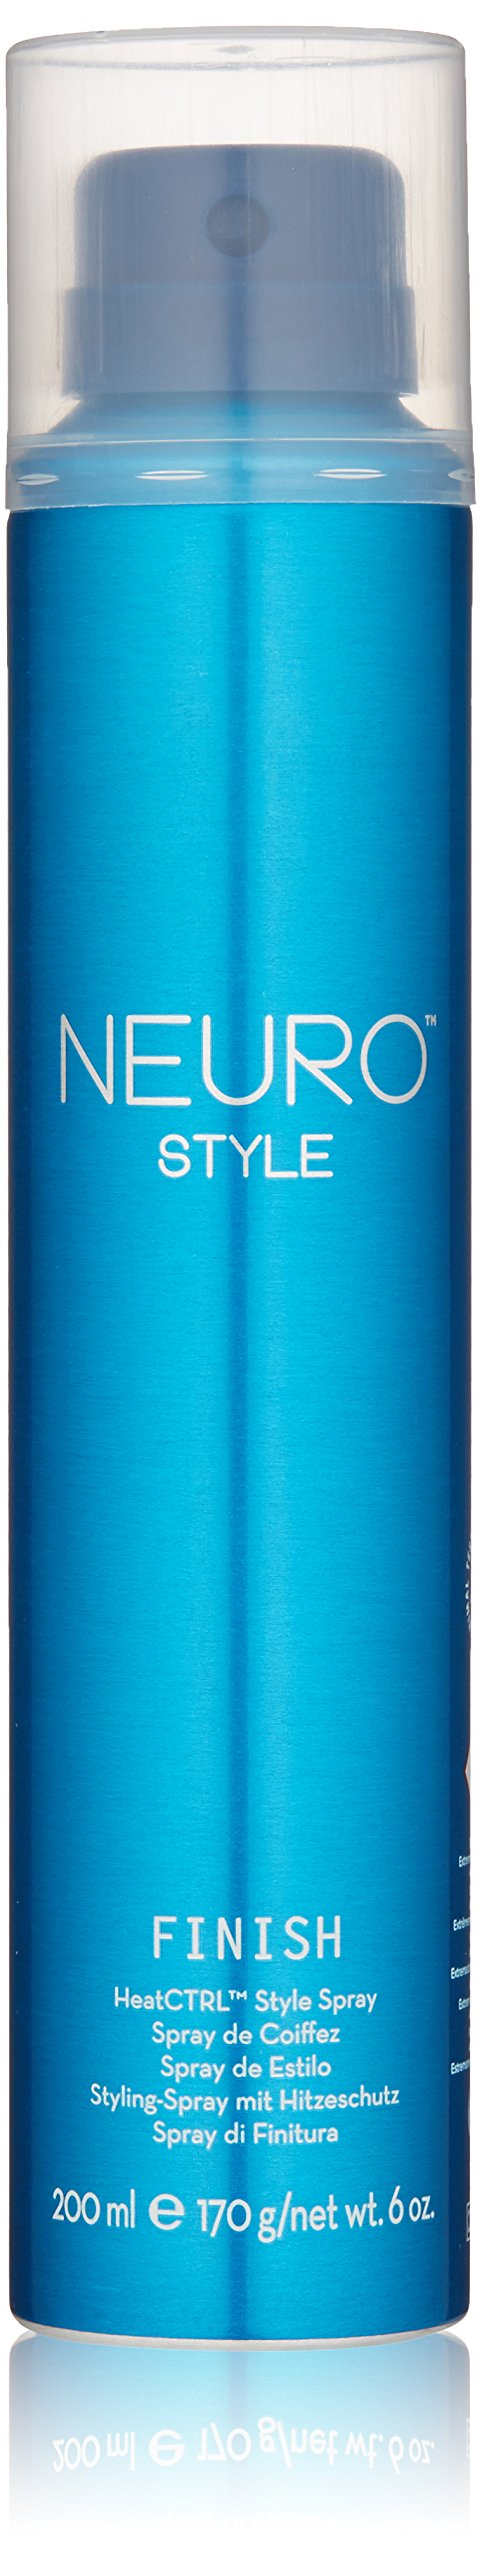 Neuro Finish Hairspray